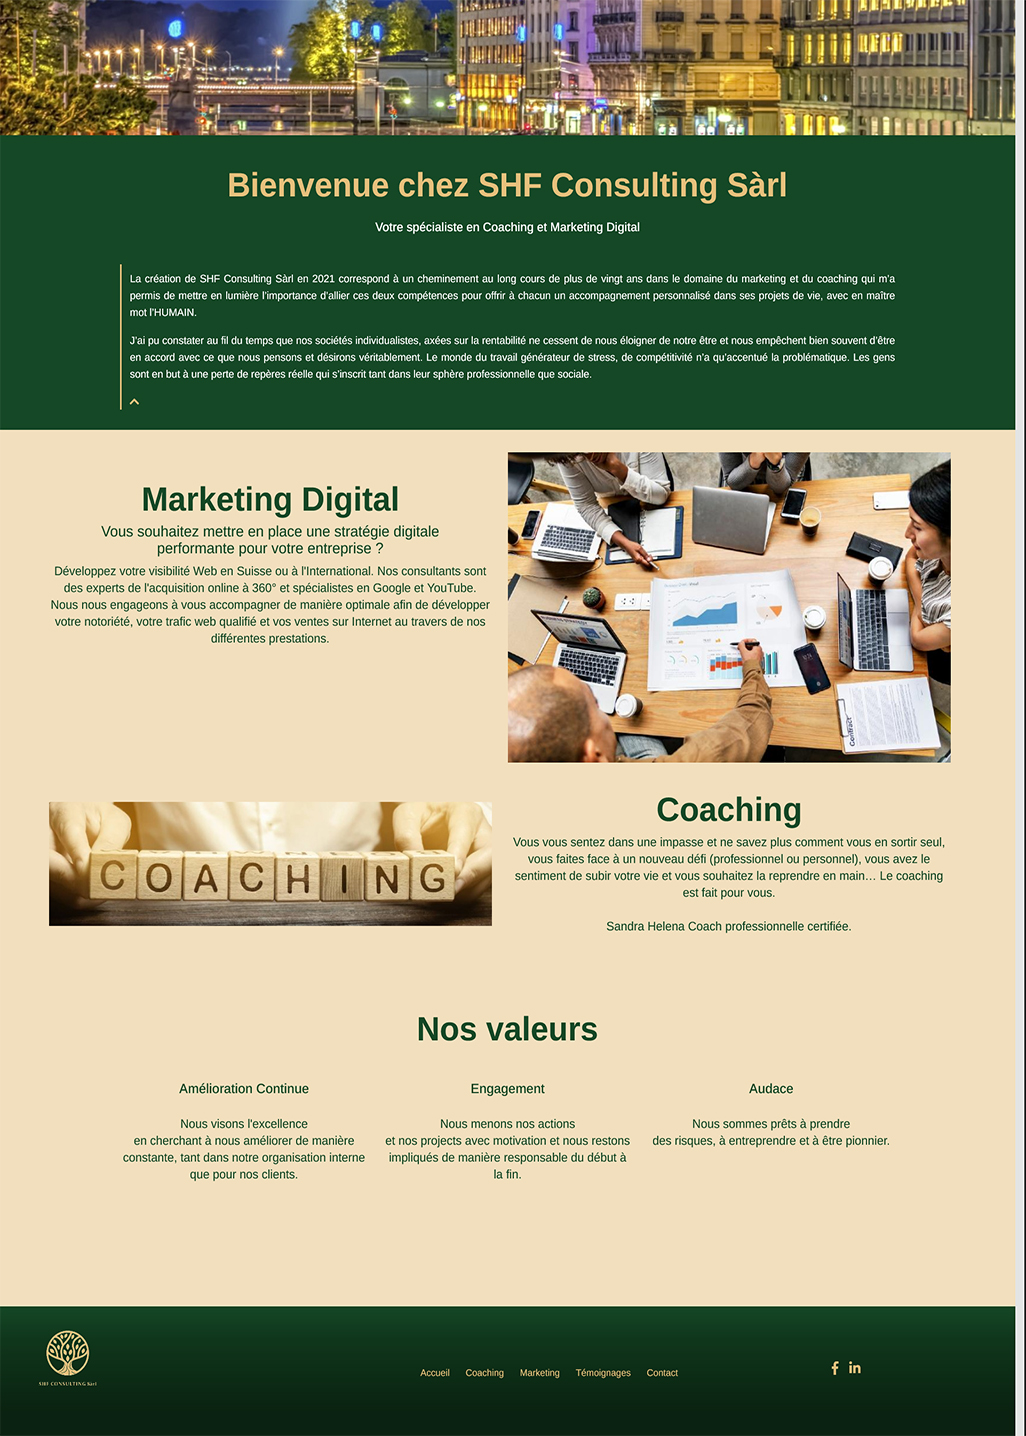 SHF Consulting